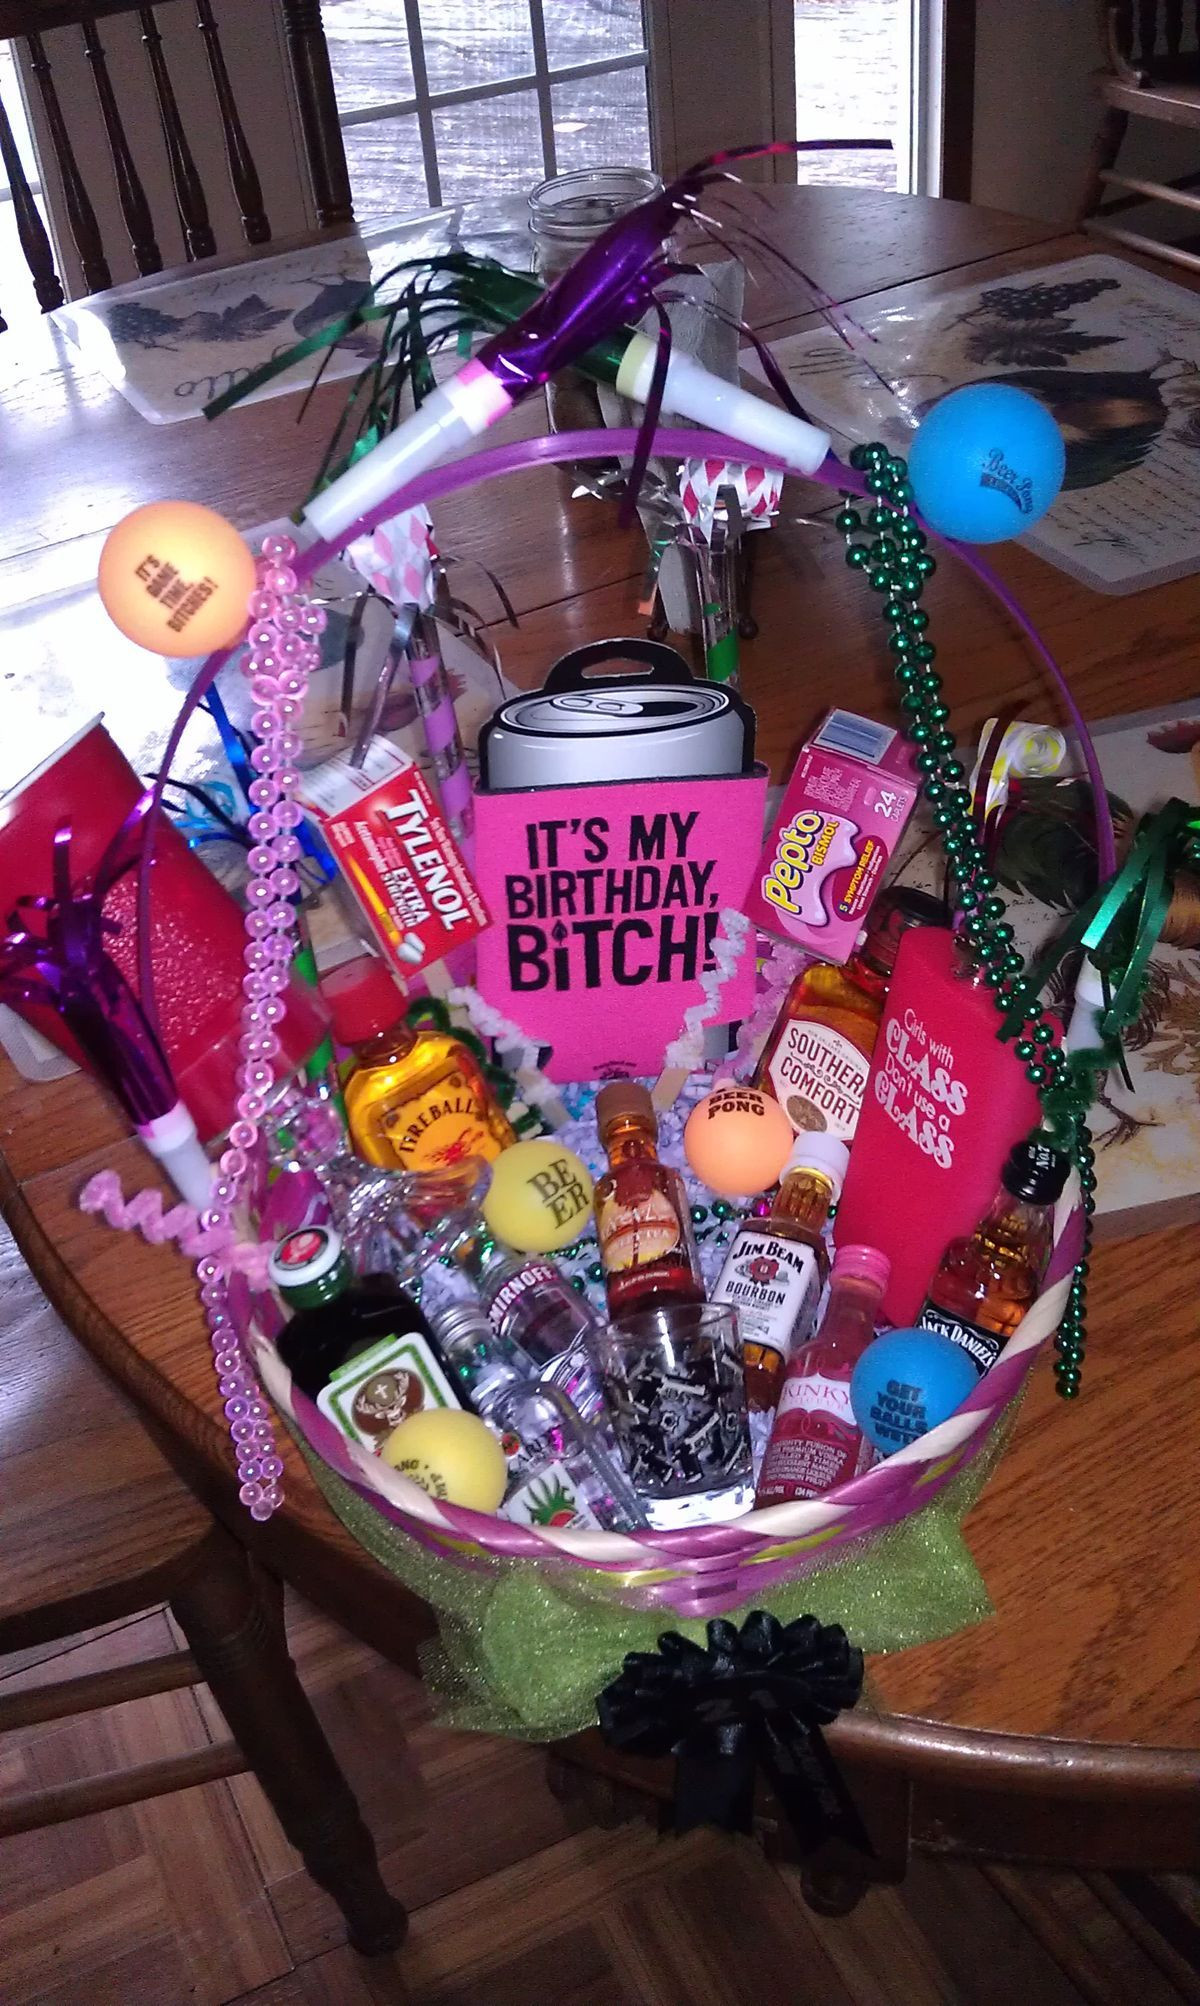 Gift Basket Ideas For Friends Birthday  Pin by Diane Schultz Ziccardi on ts